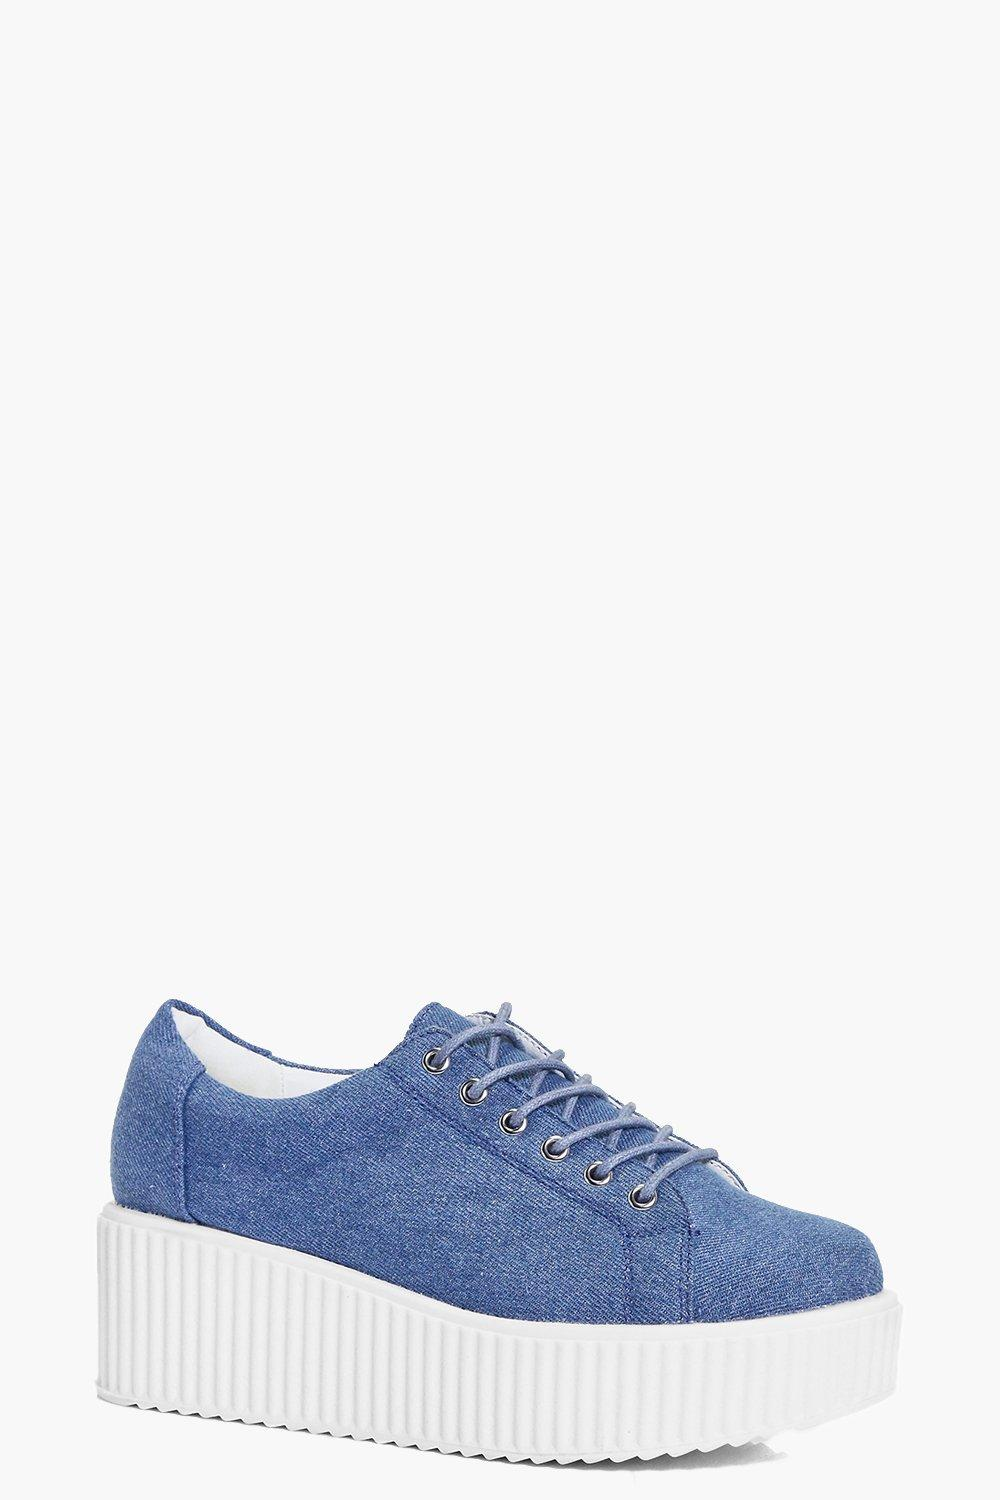 Violet Lace Up Platform Trainer